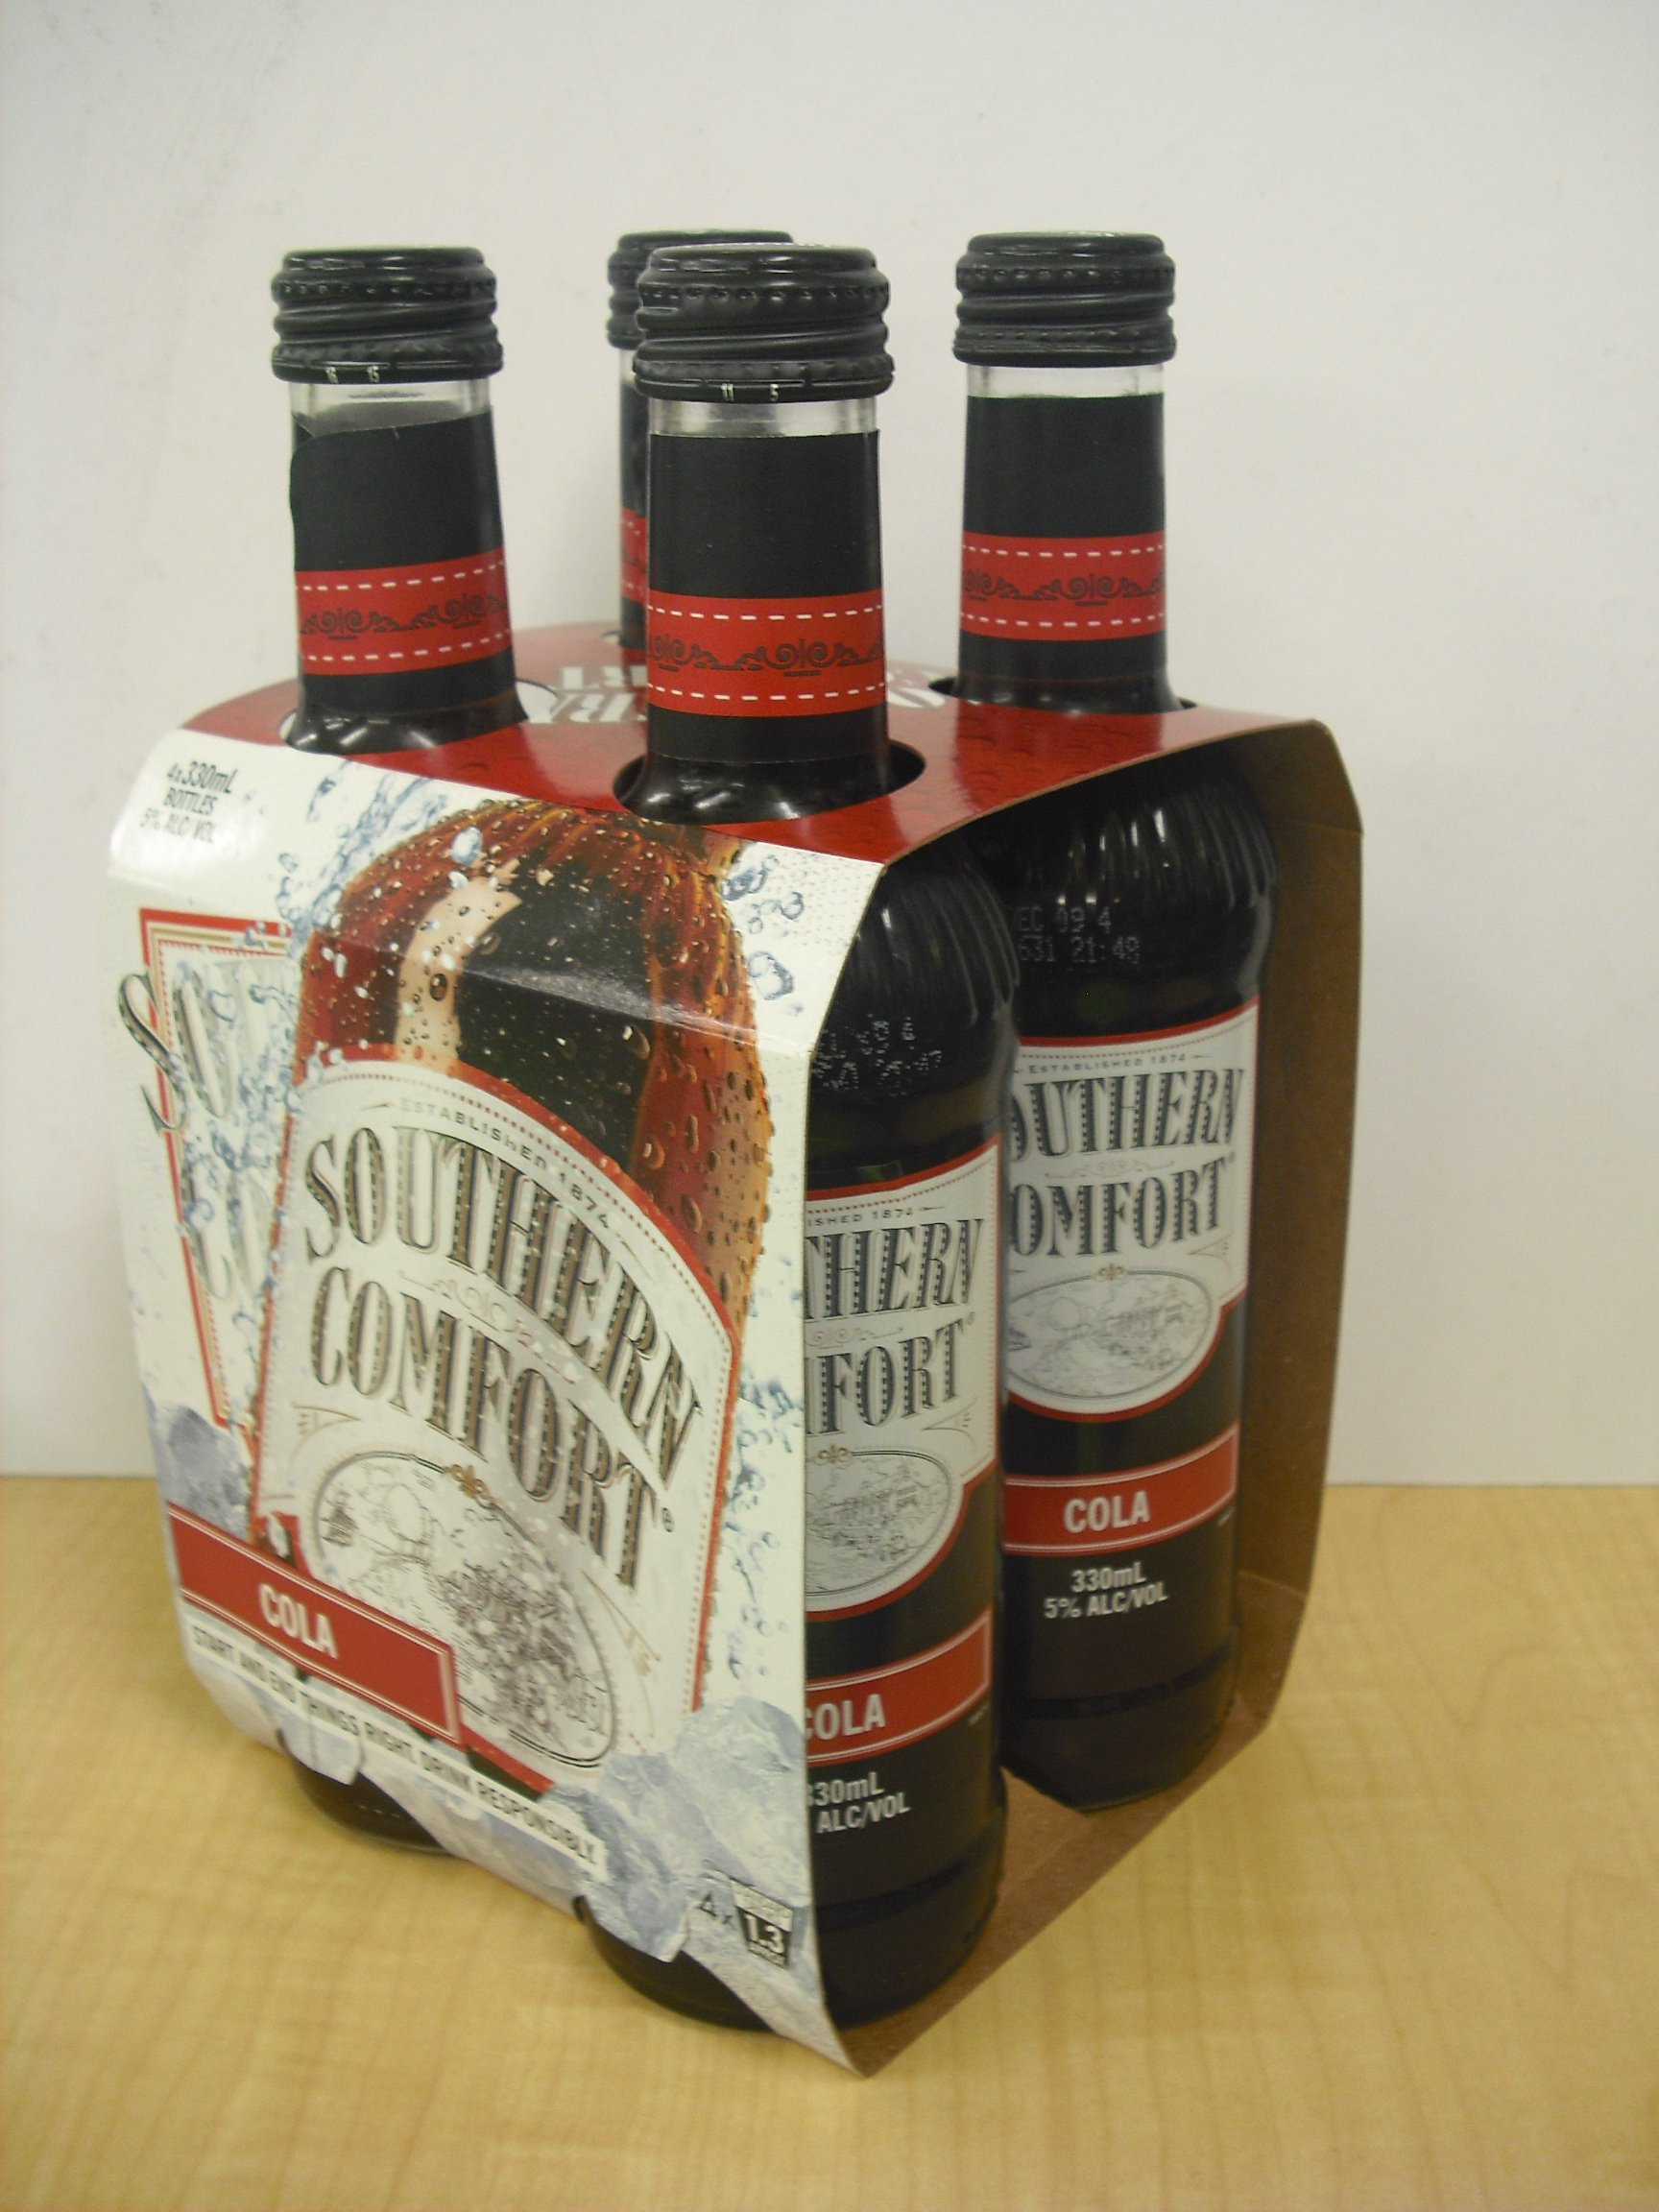 Southern Comfort Amp Cola Bottles 4 X 330ml 5 Southern